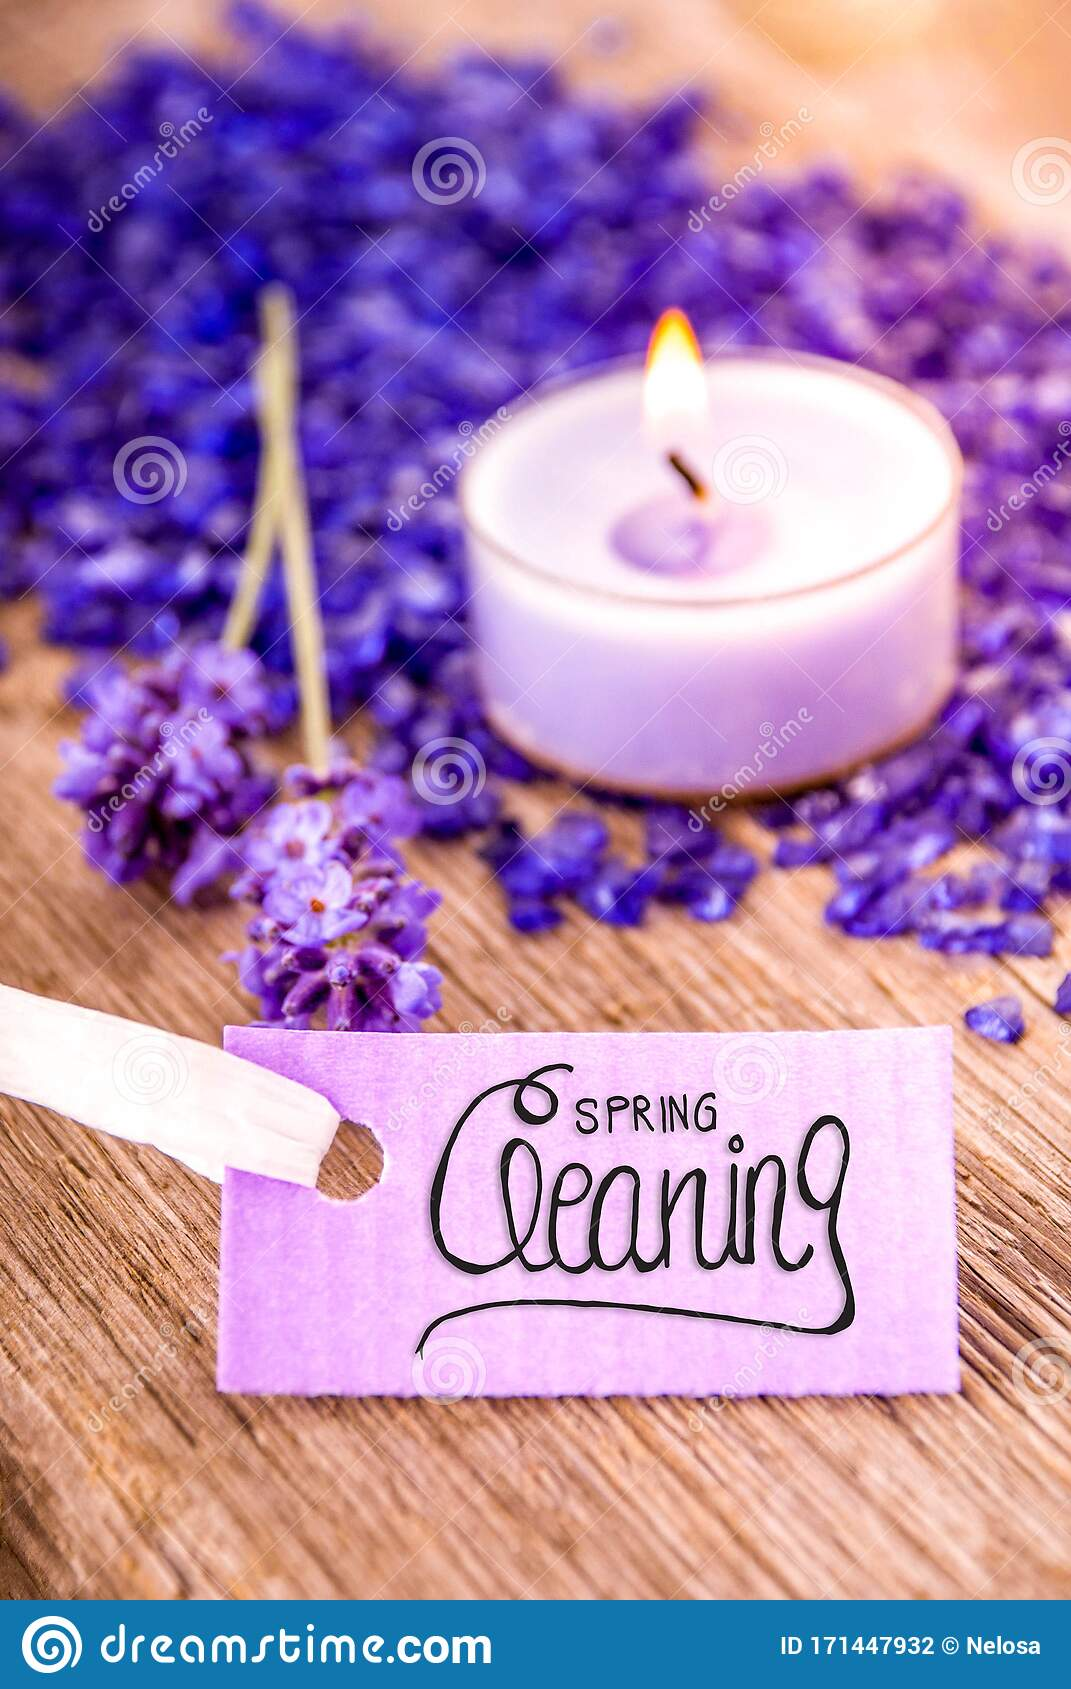 Label With Calligraphy Spring Cleaning, Lavender, Candle